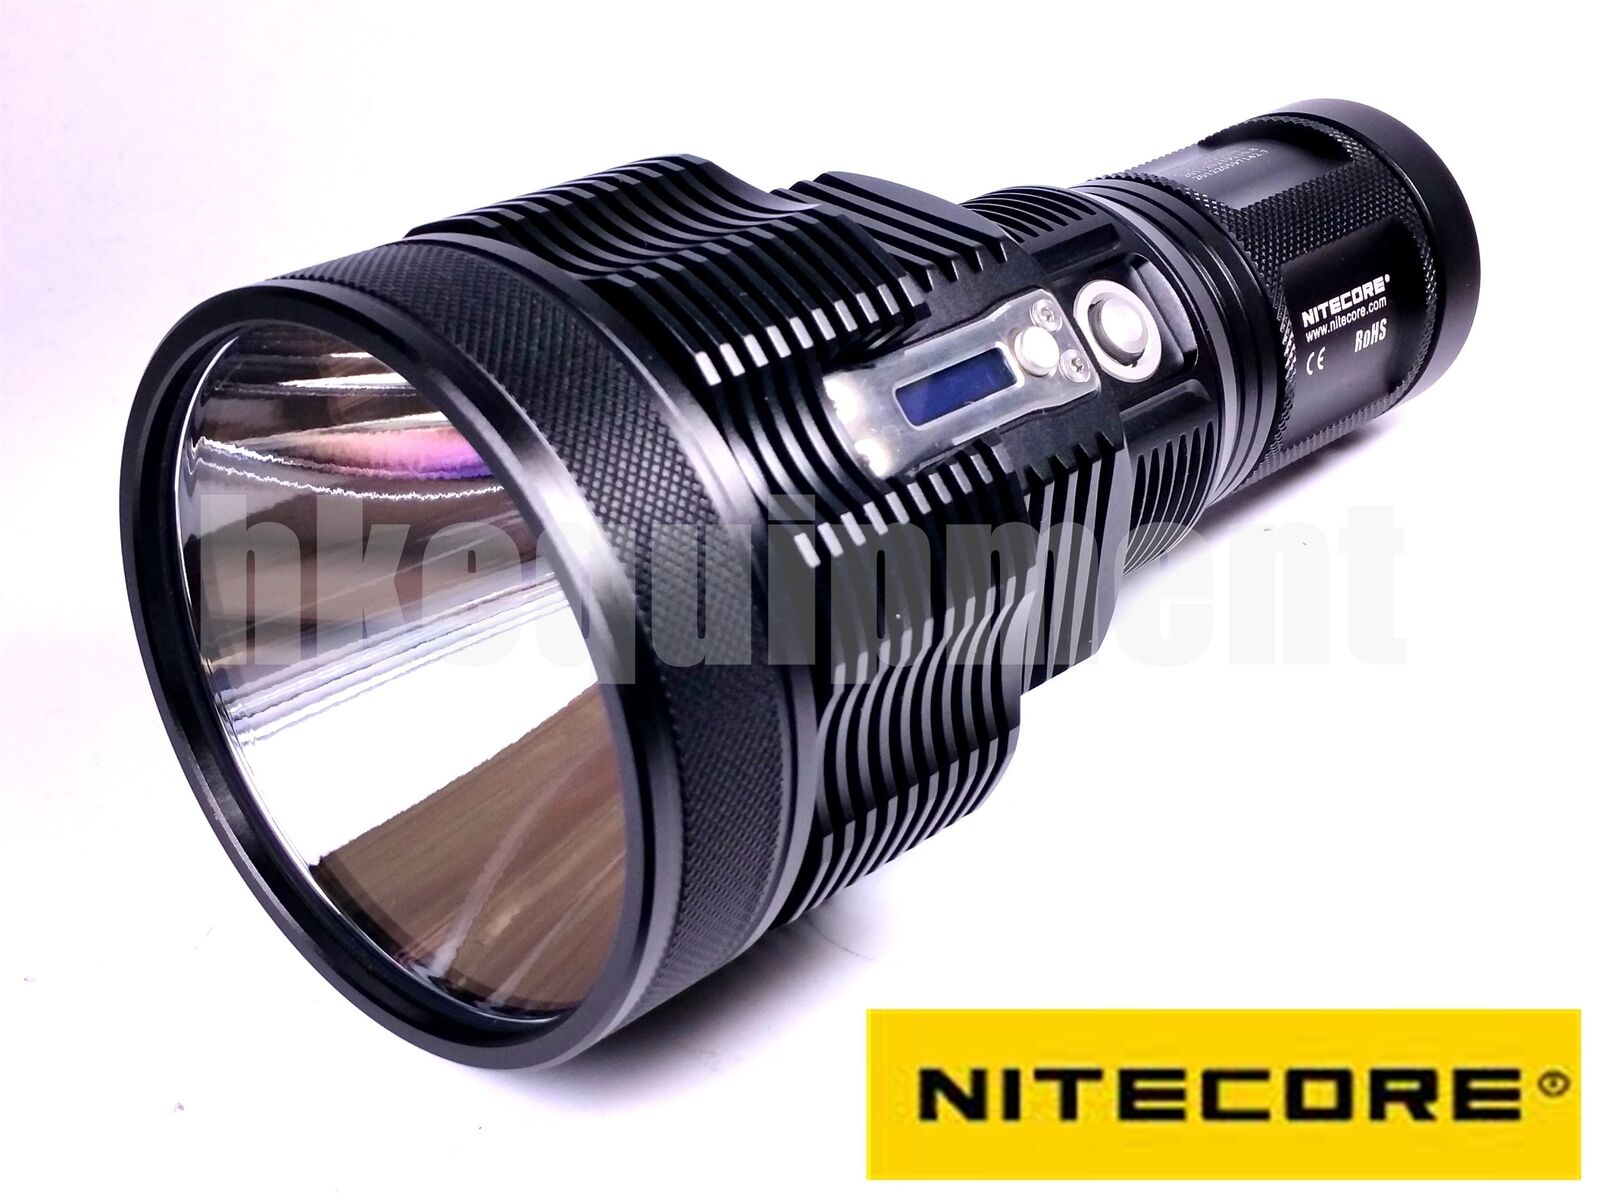 Nitecore TM36 Lite Luminus SBT-70 LED Flashlight 1800lm + 4x NL189 3400 Battery